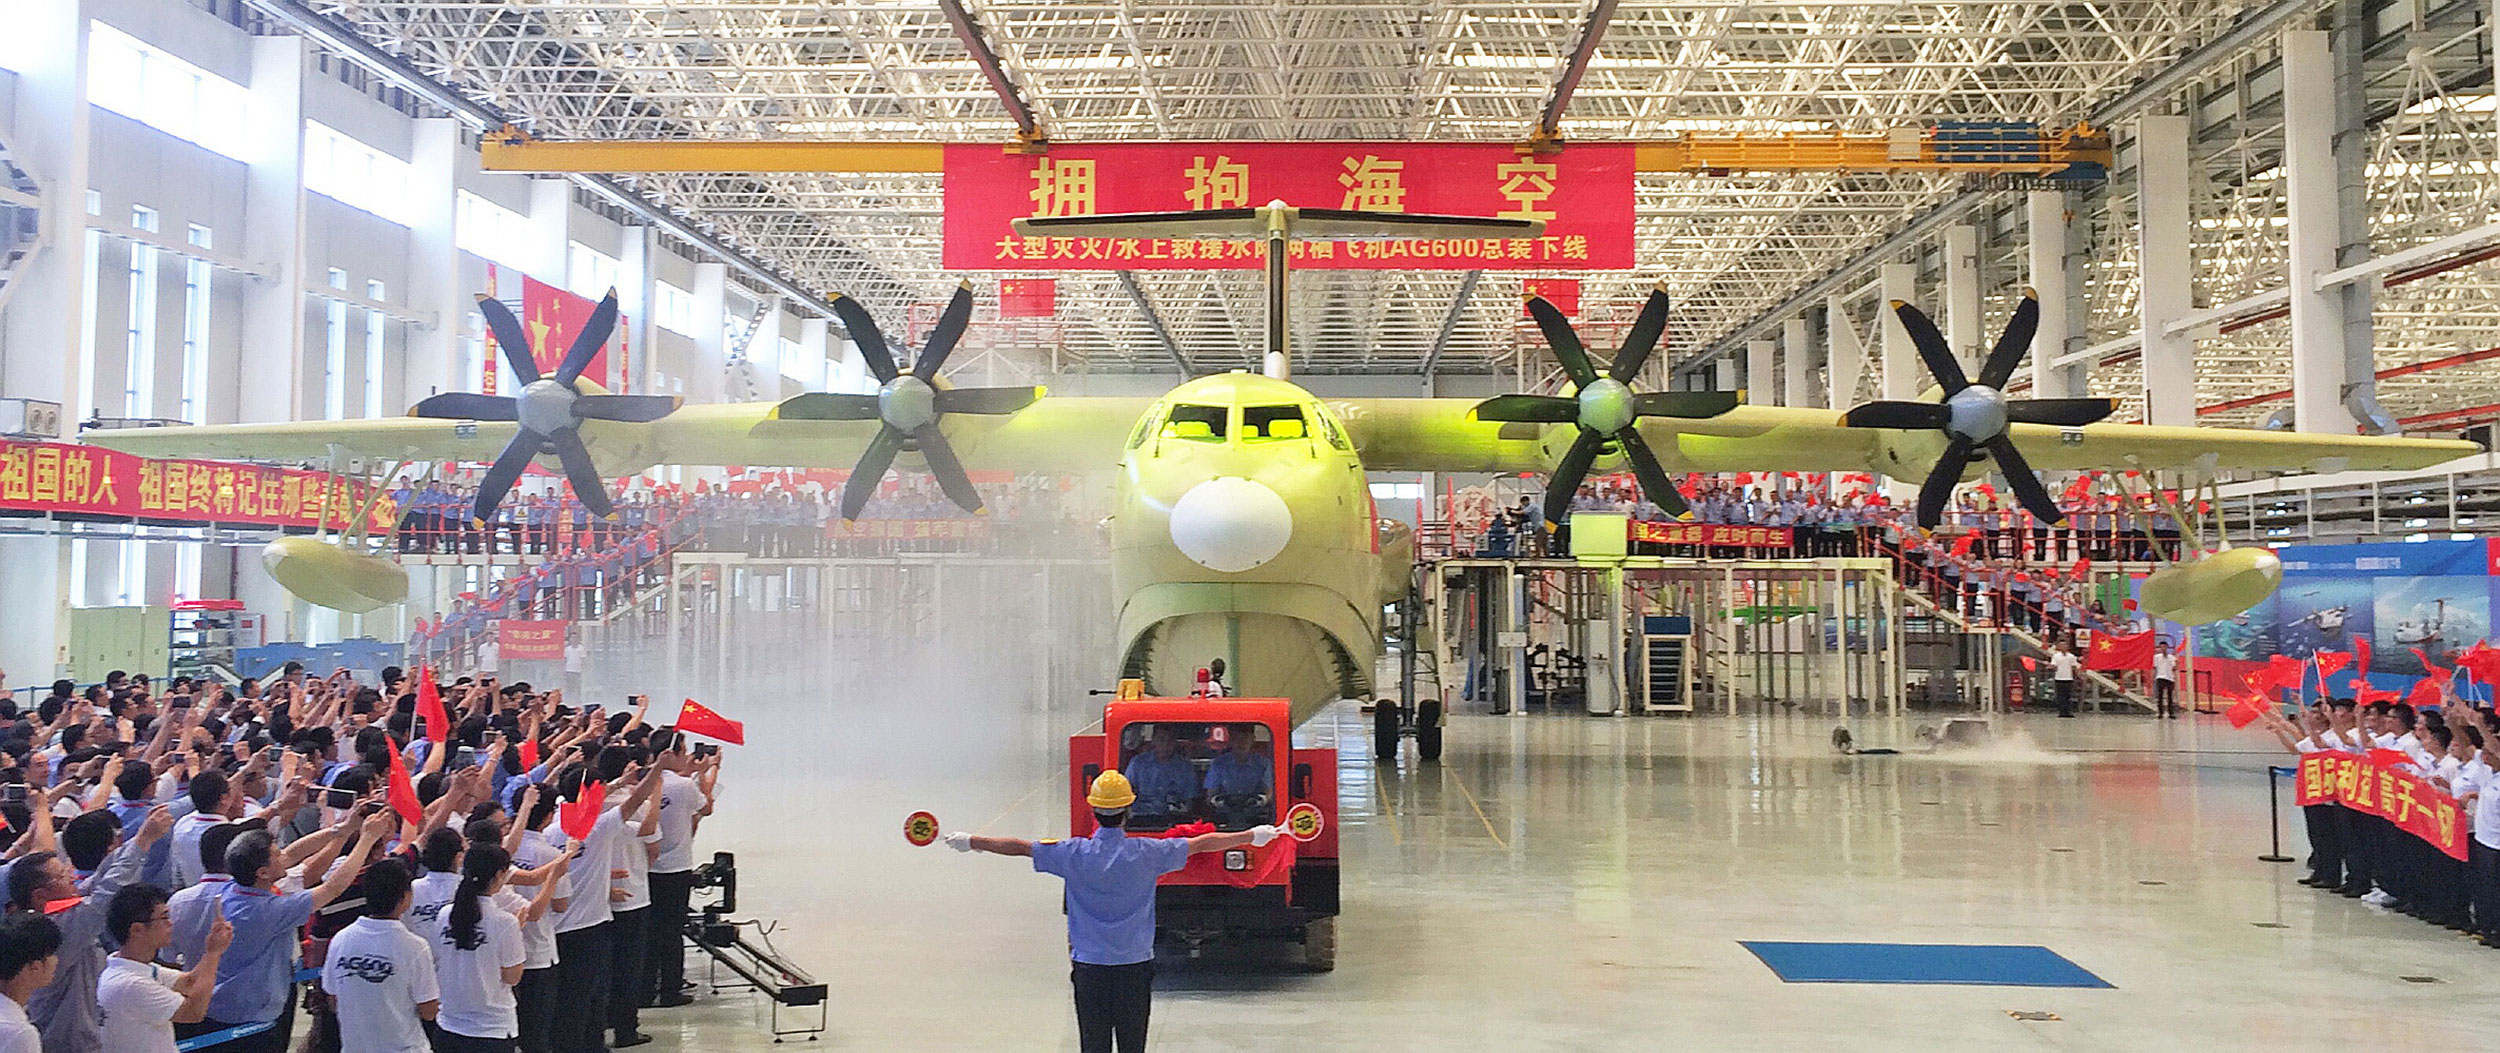 The AVIC AG-600 is unveiled in China. It's about the size of a Boeing 737.